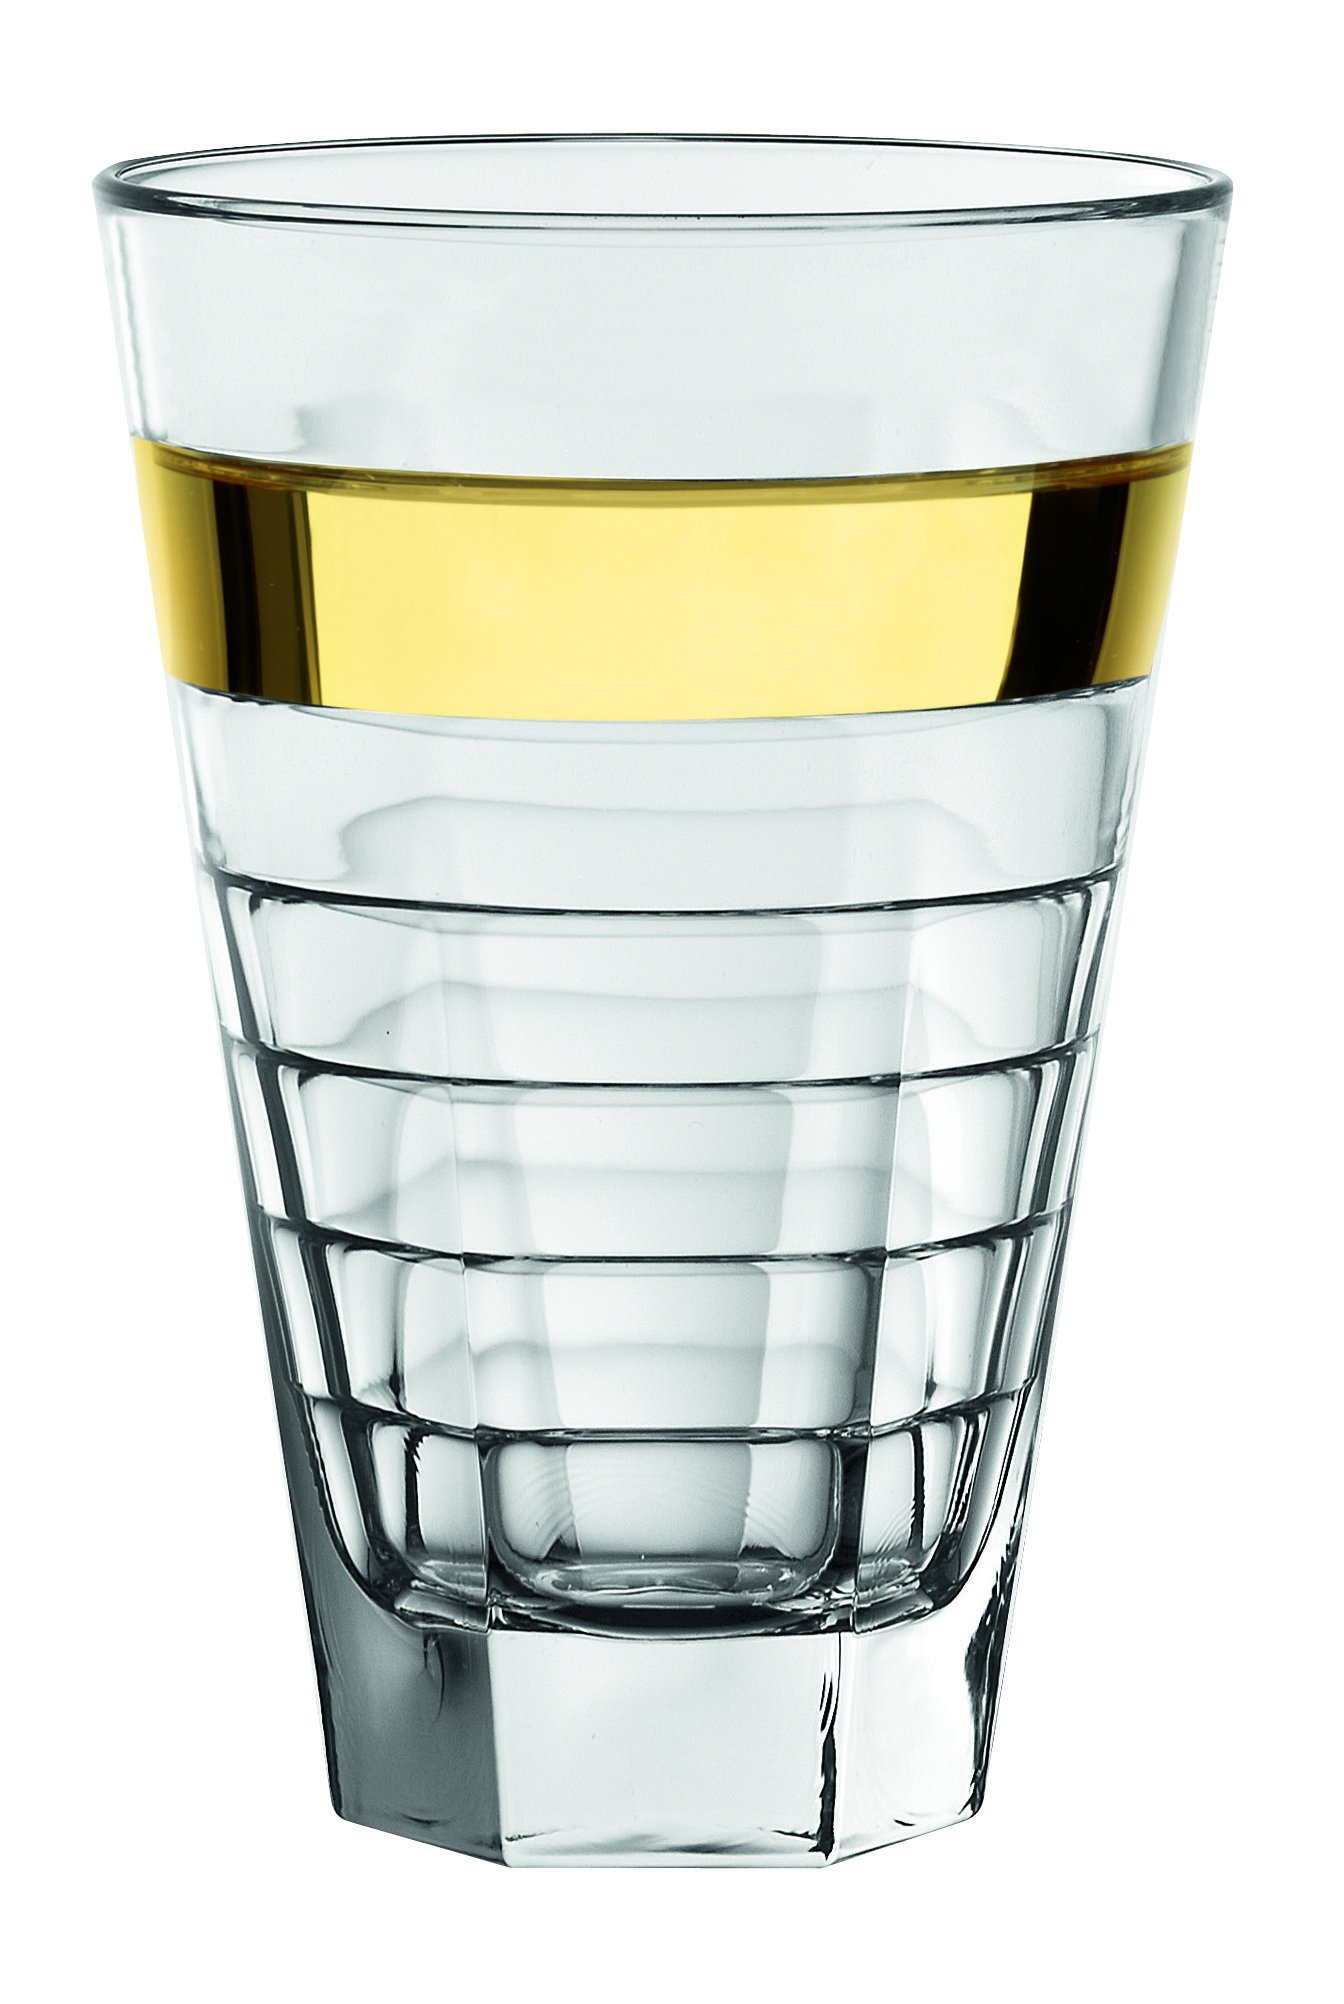 Barski - European Glass - Hiball Tumbler - with Gold Band - 14.5 oz. - Set of 6 Highball Glasses - Made in Europe